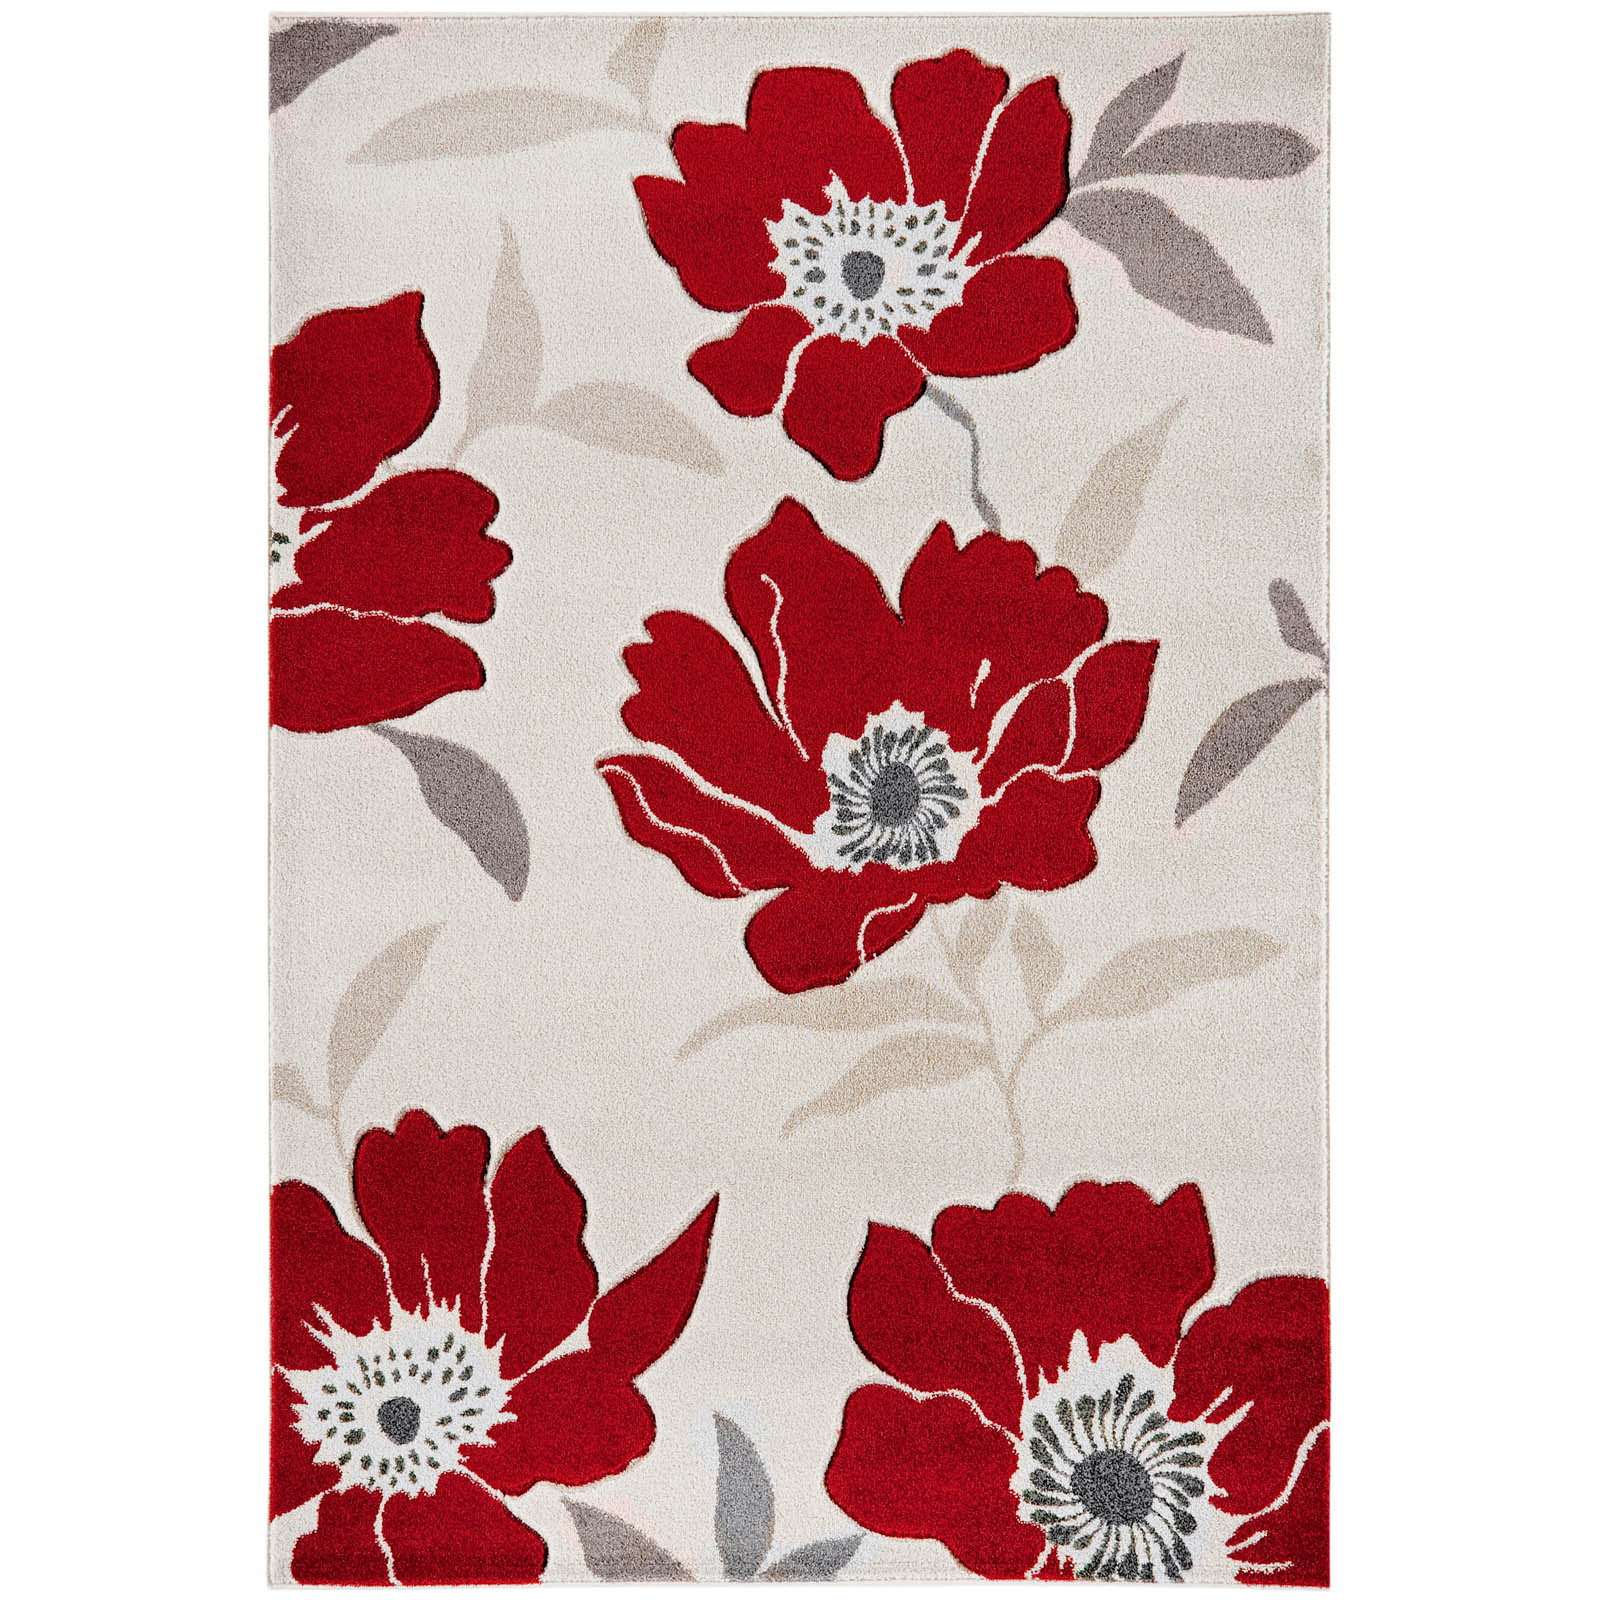 Vogue Poppies Rugs VG02 in Red